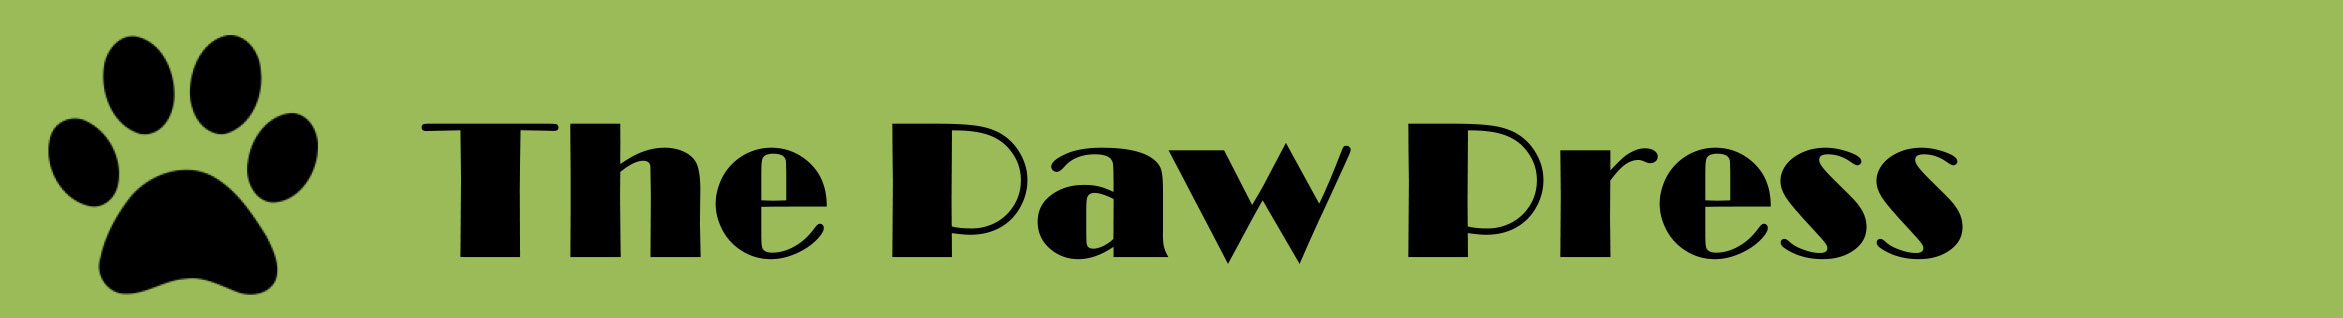 Paw Press Header